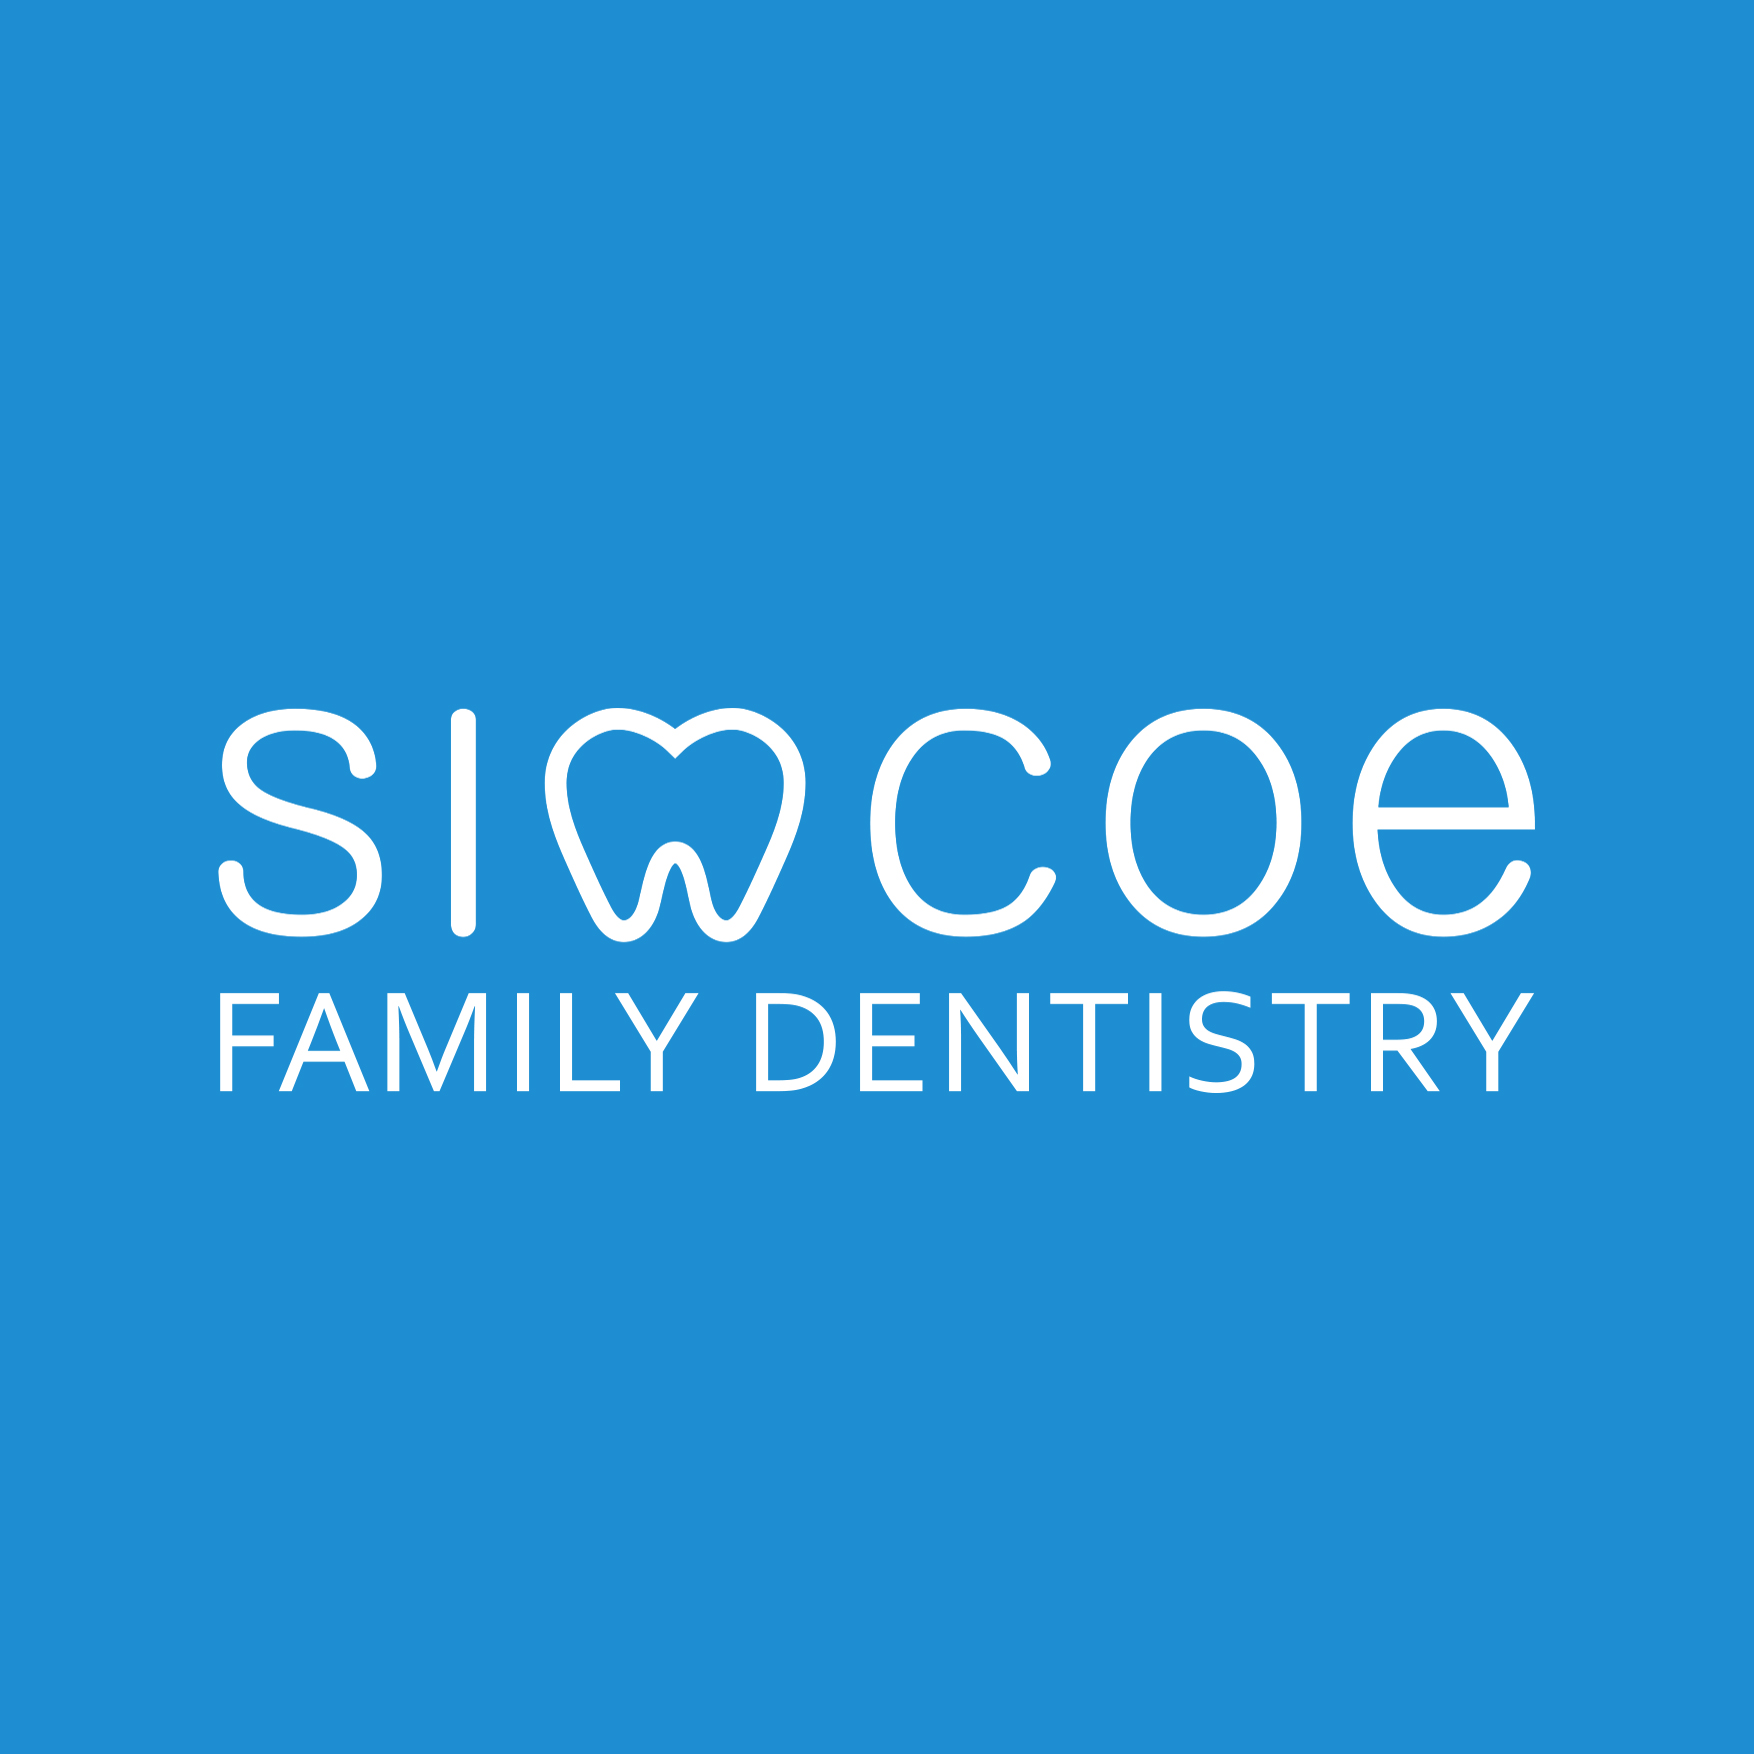 Simcoe Family Dentistry Brings Big Smiles To Barrie With Invisalign Clear Aligners.